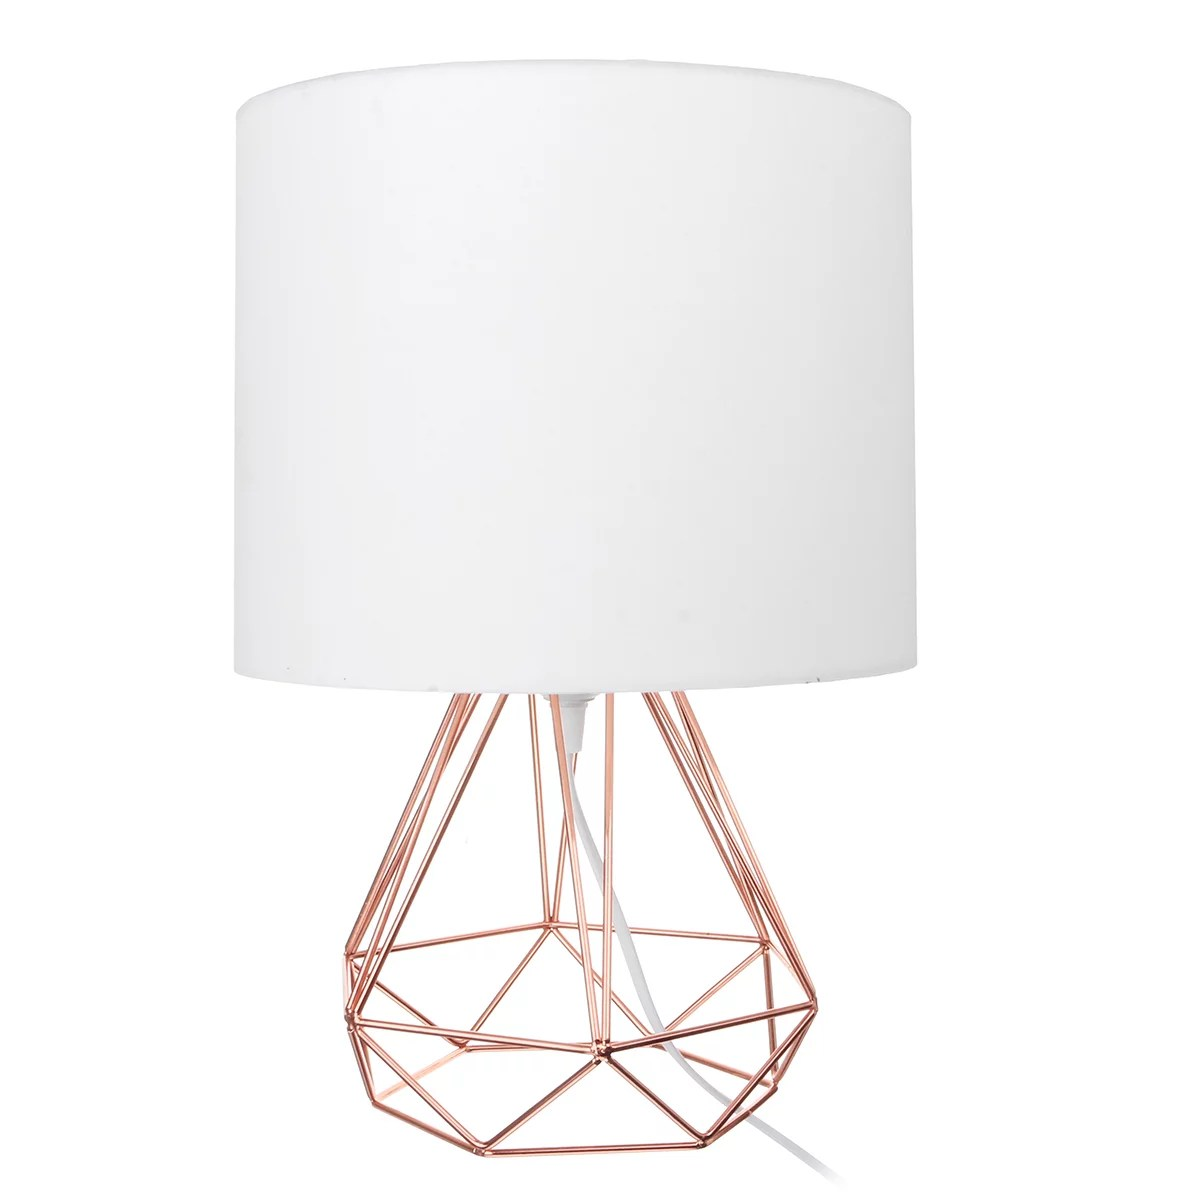 bedside table lamp small nightstand lamp modern style hollowed out base with fabric drum shaped lampshade for bedrooms living room